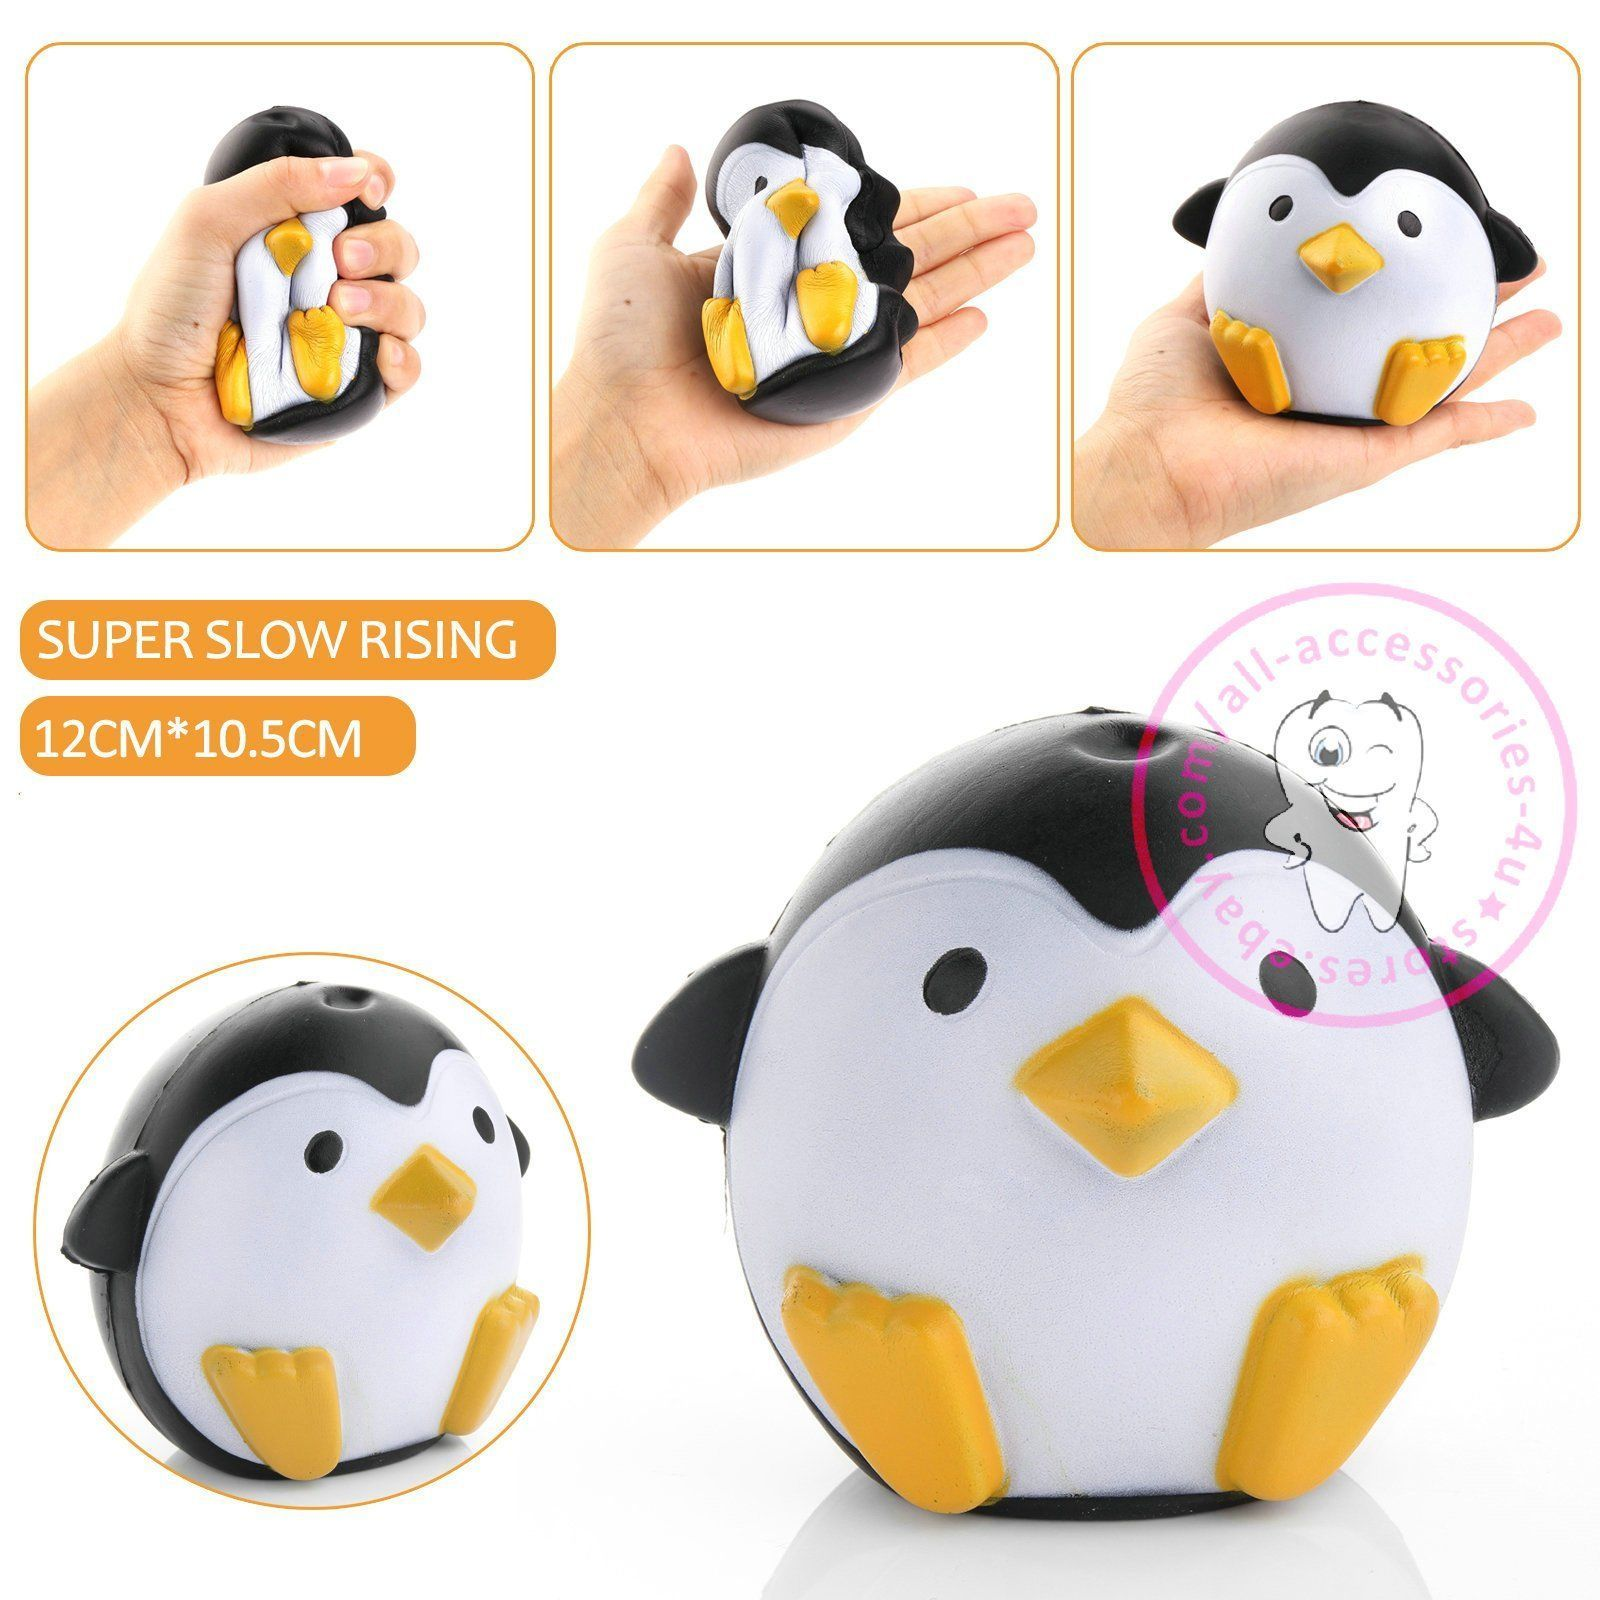 Jumbo Squishy Colorful Slow Rising Cute Kids Gifts Squeeze Toy Pressure Relief